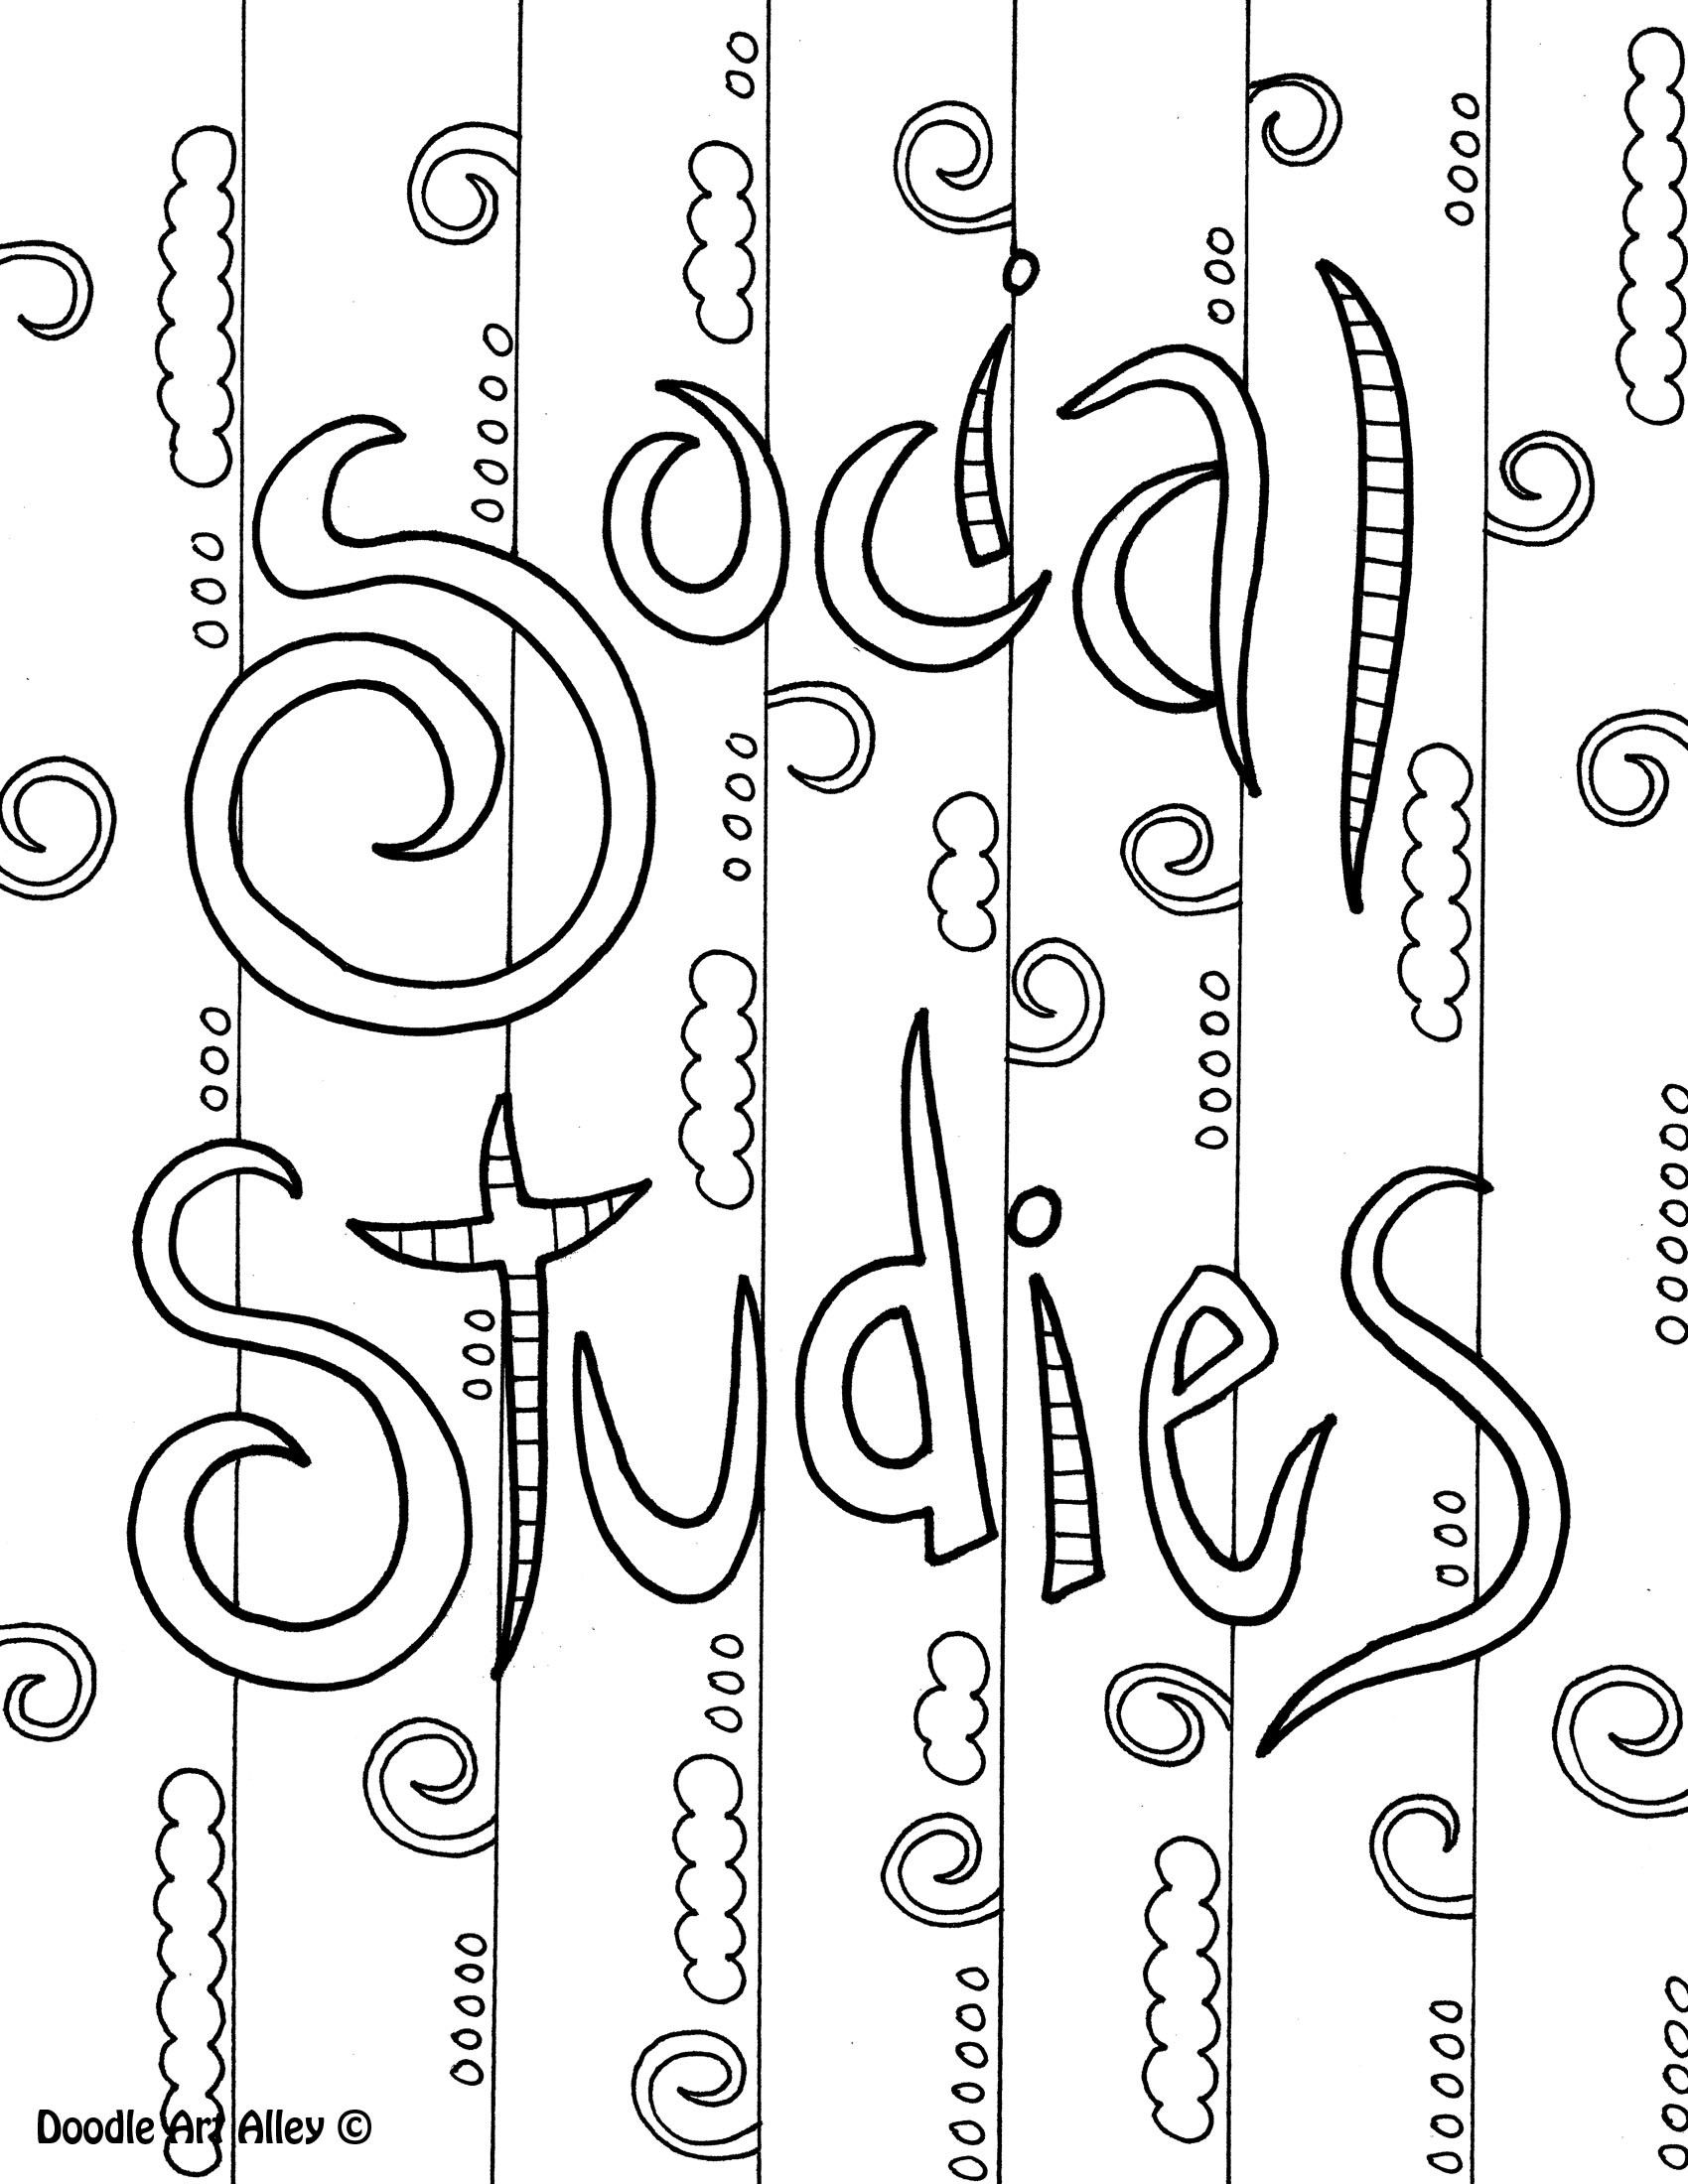 social studies coloring pages Pin by Susan Klabunde on Color pages | Pinterest | School subjects  social studies coloring pages